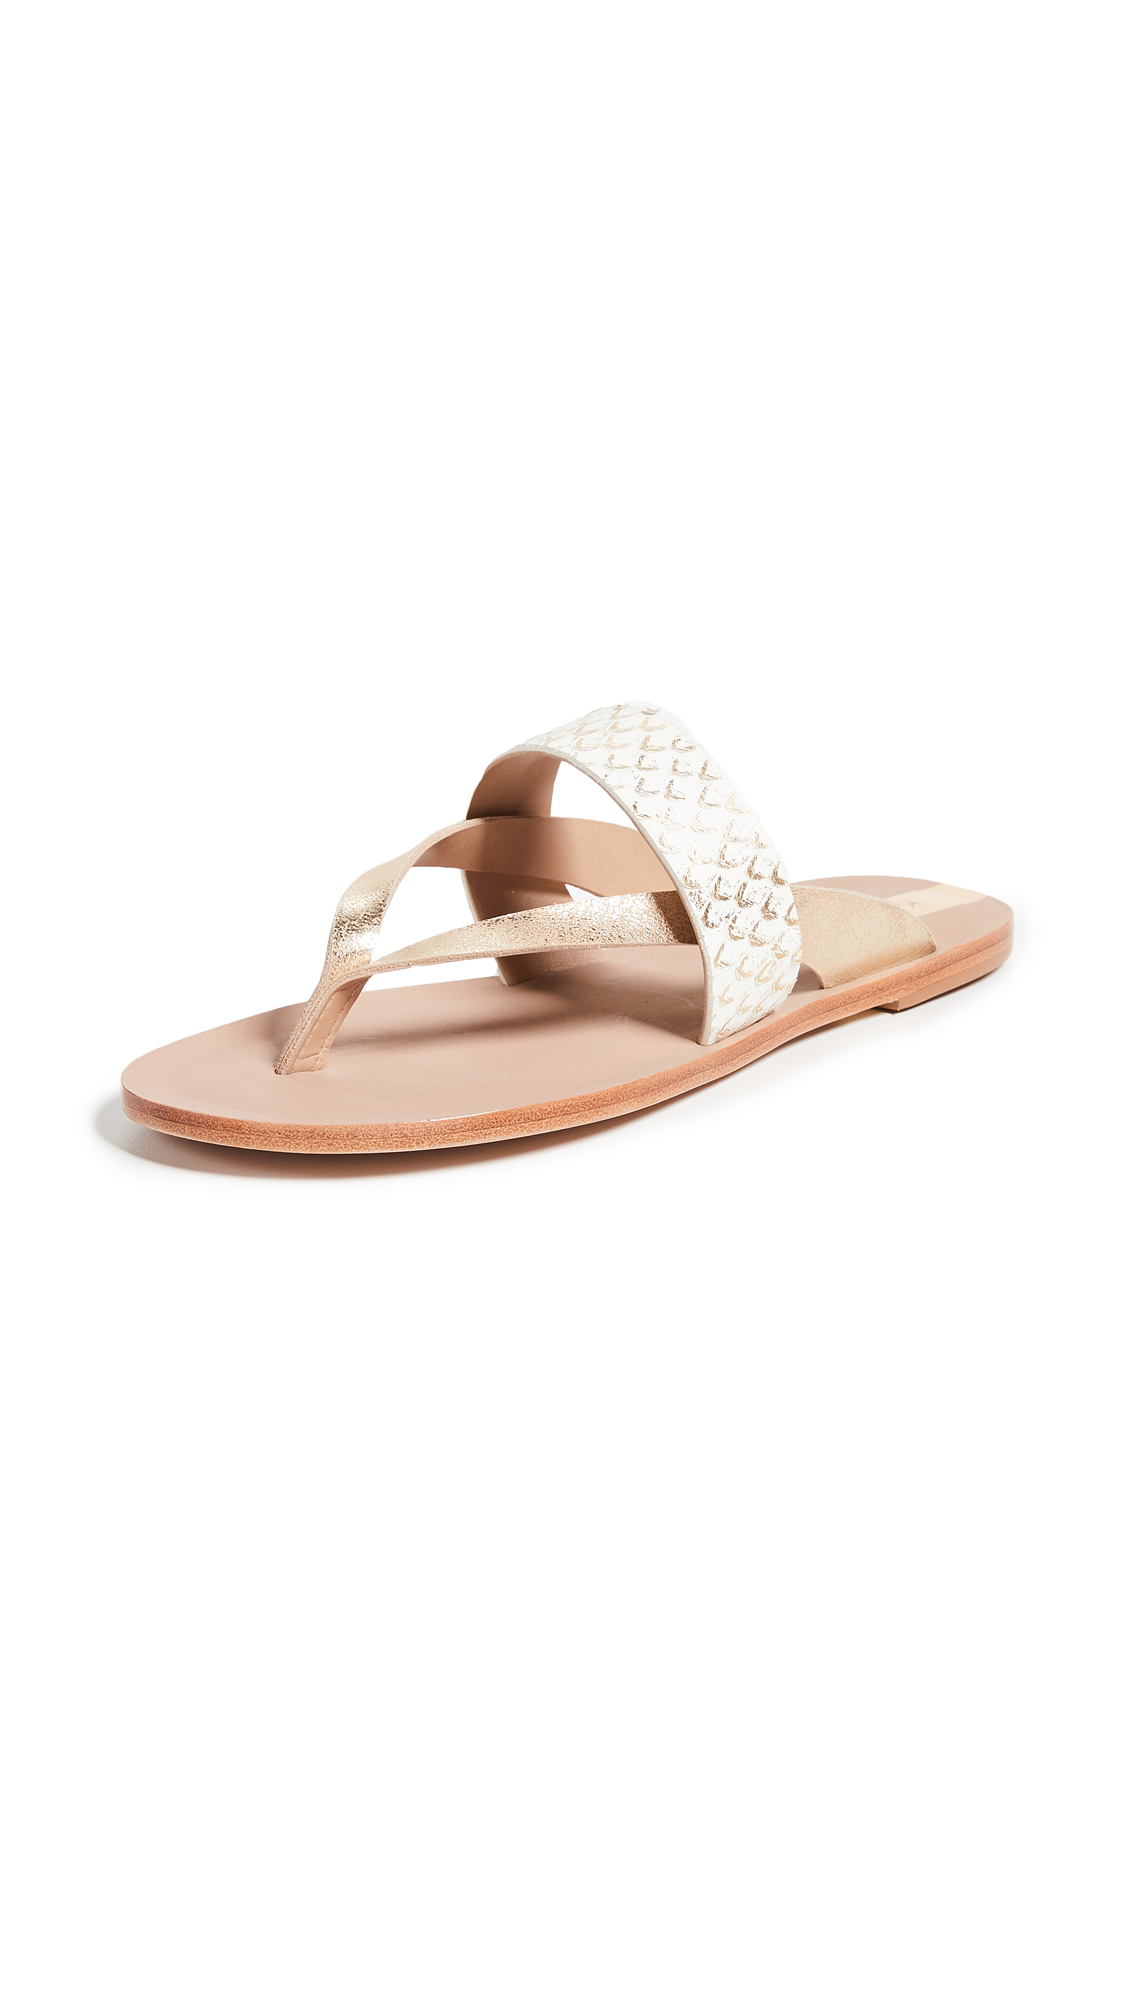 KAANAS Natal Slipon Sandals - Gold